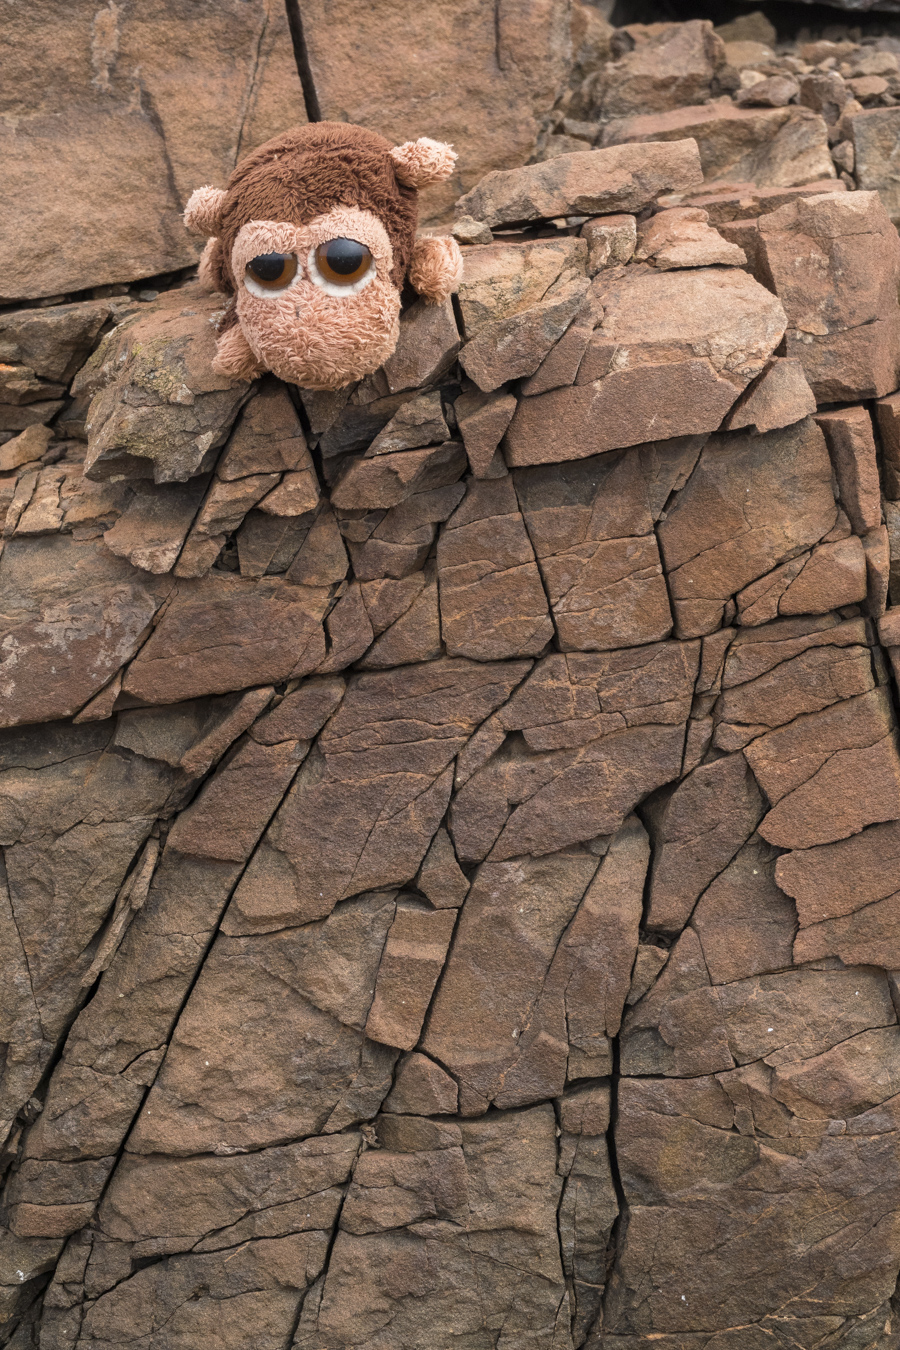 Mr. Monkey was very interested in these cracked rocks! It is so hot and dry in the desert!!